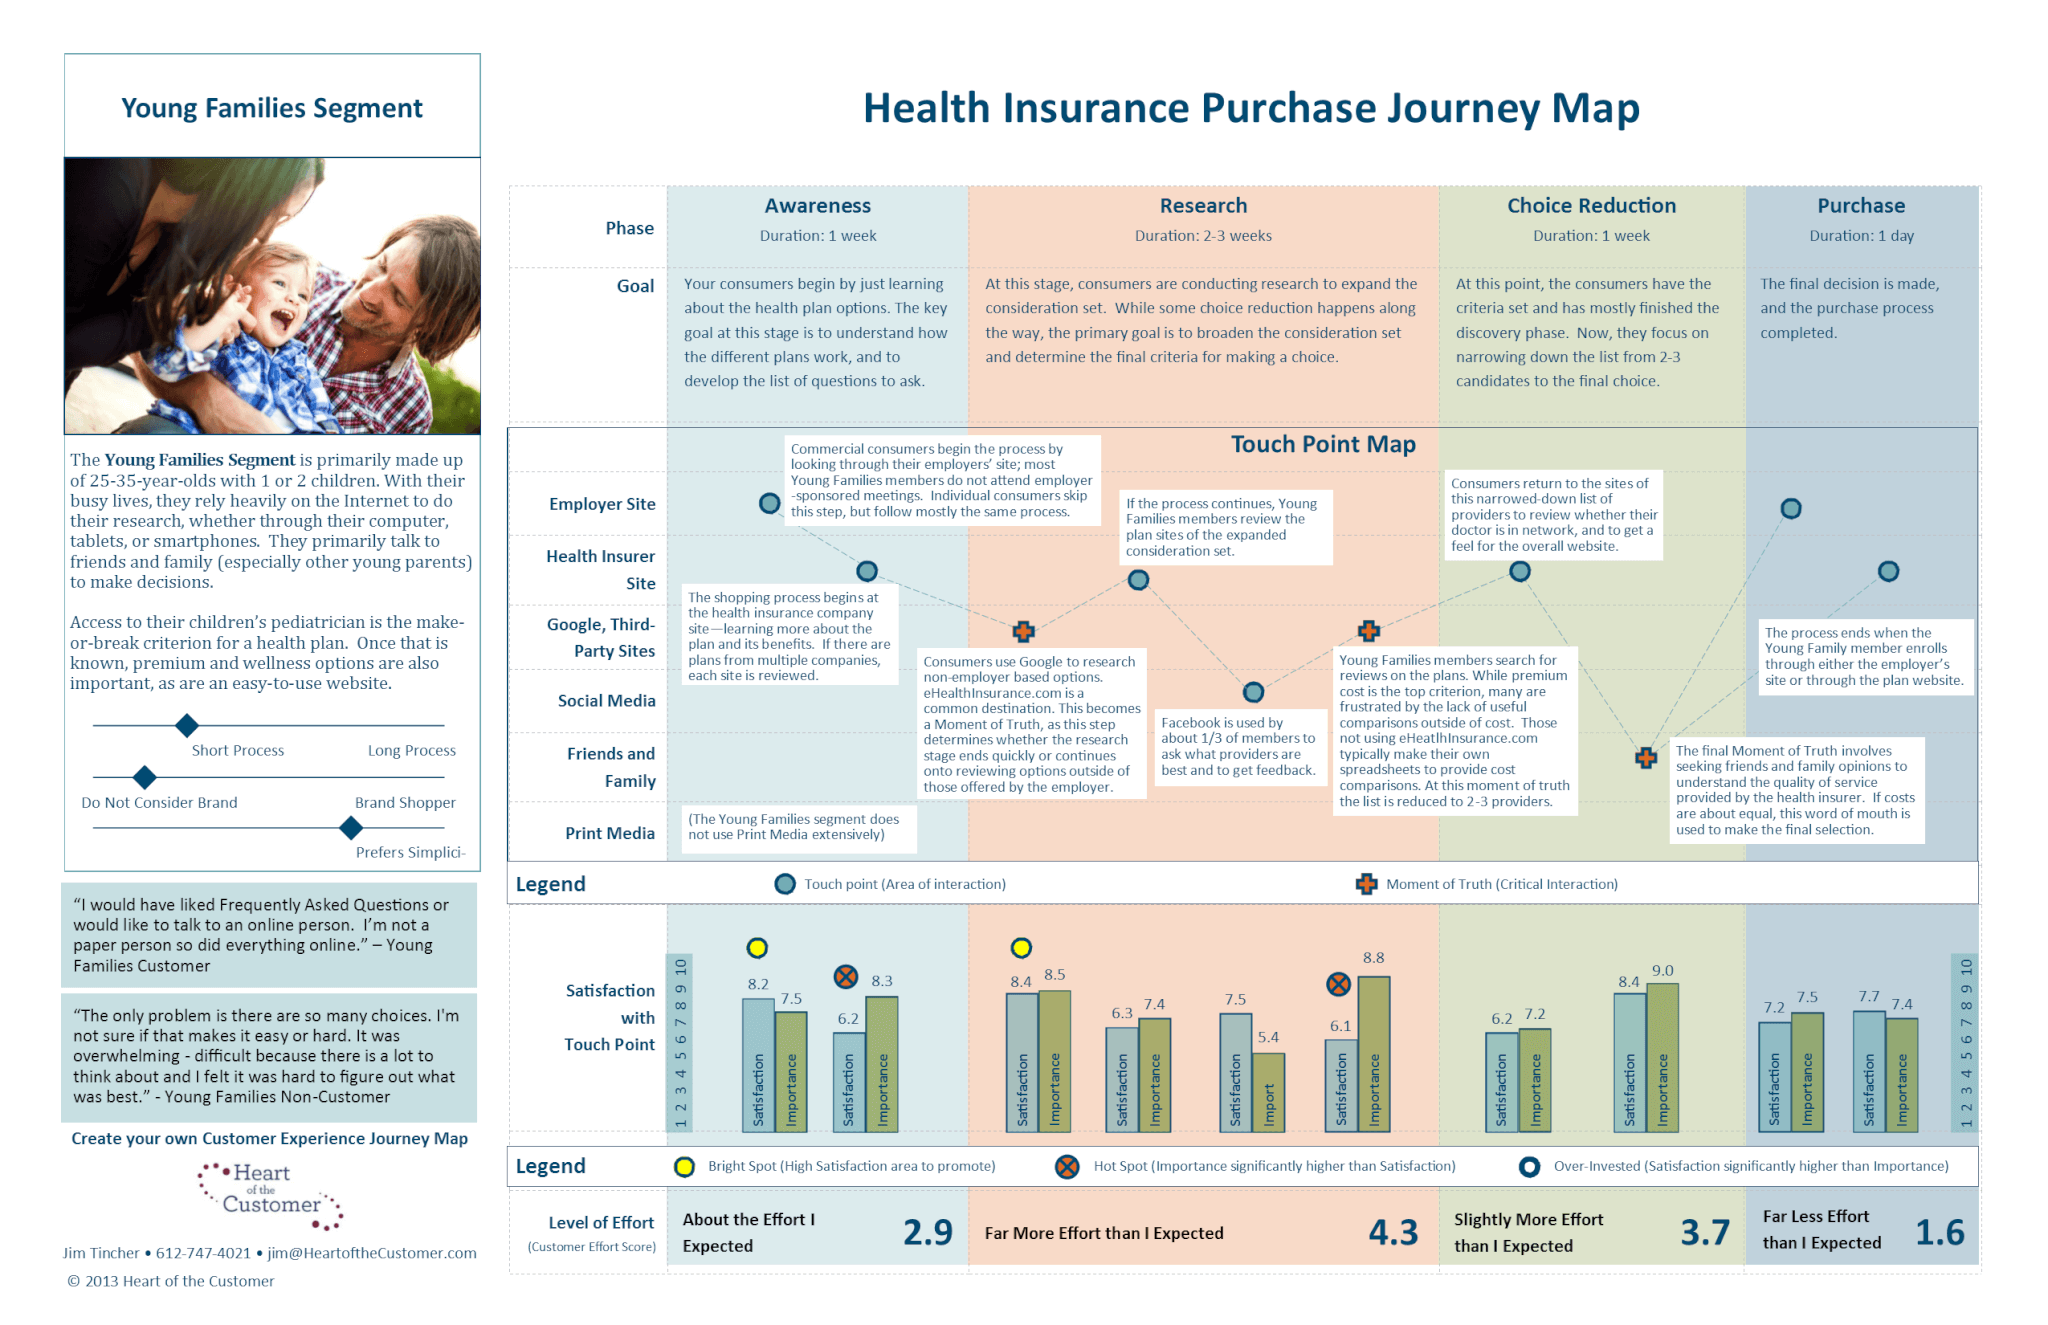 Example Customer Journey - B2C Young Family Customer Journey to Health Insurance Purchase by 'Heart Of The Customer'r'